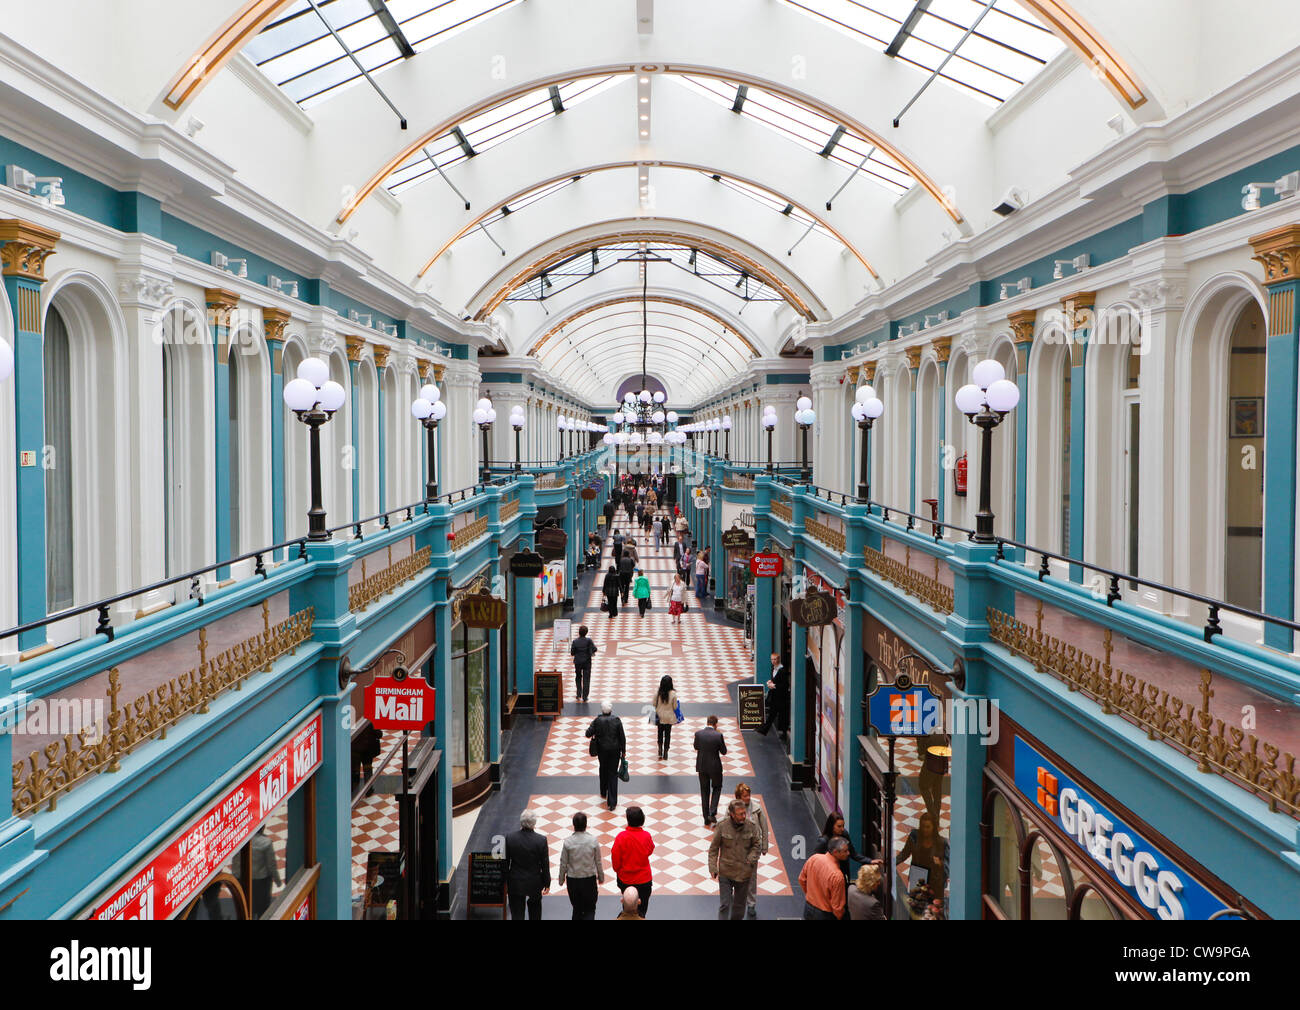 Great Western Arcade, Birmingham, West Midlands, England, UK Stock Photo